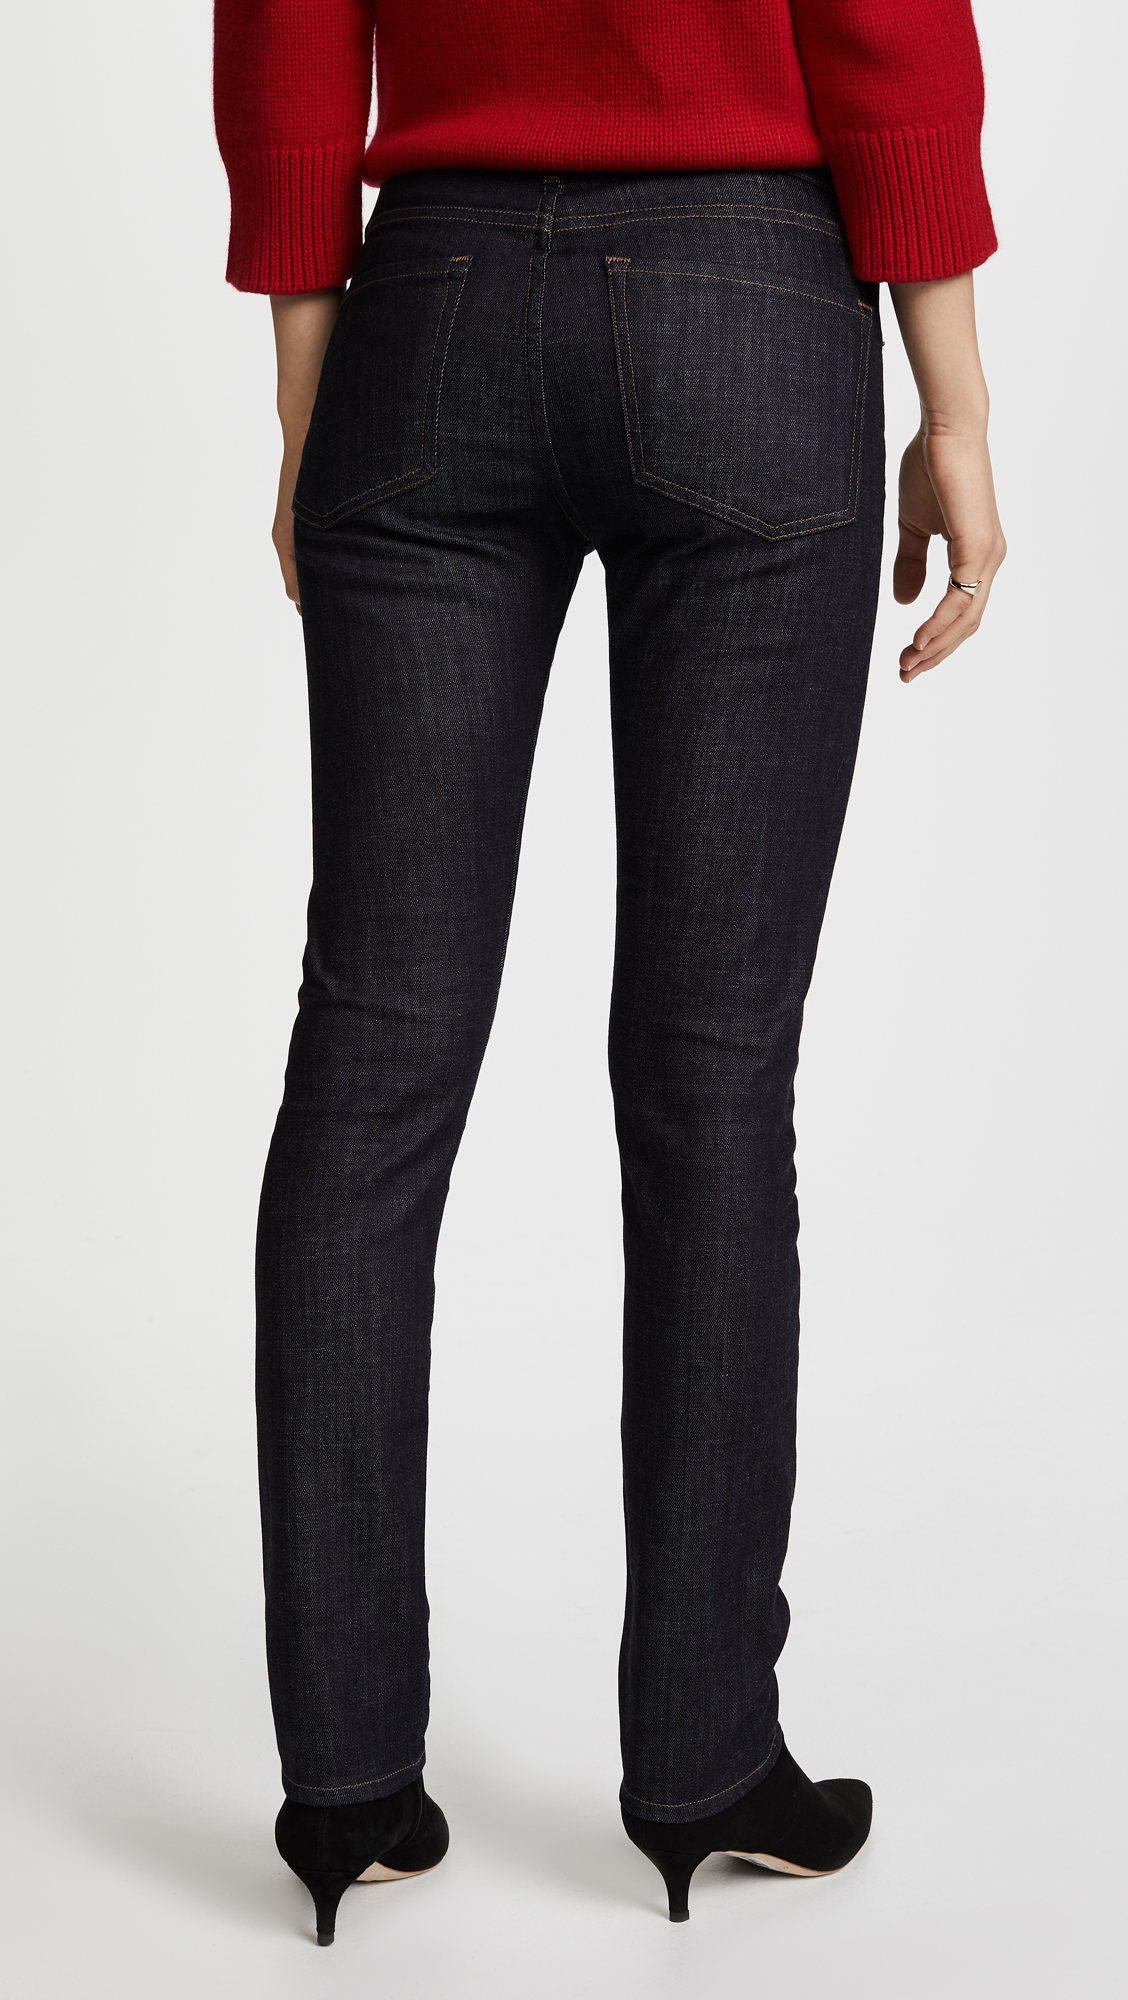 bf2b7aacfdc Citizens of Humanity Agnes Slim Straight Jeans